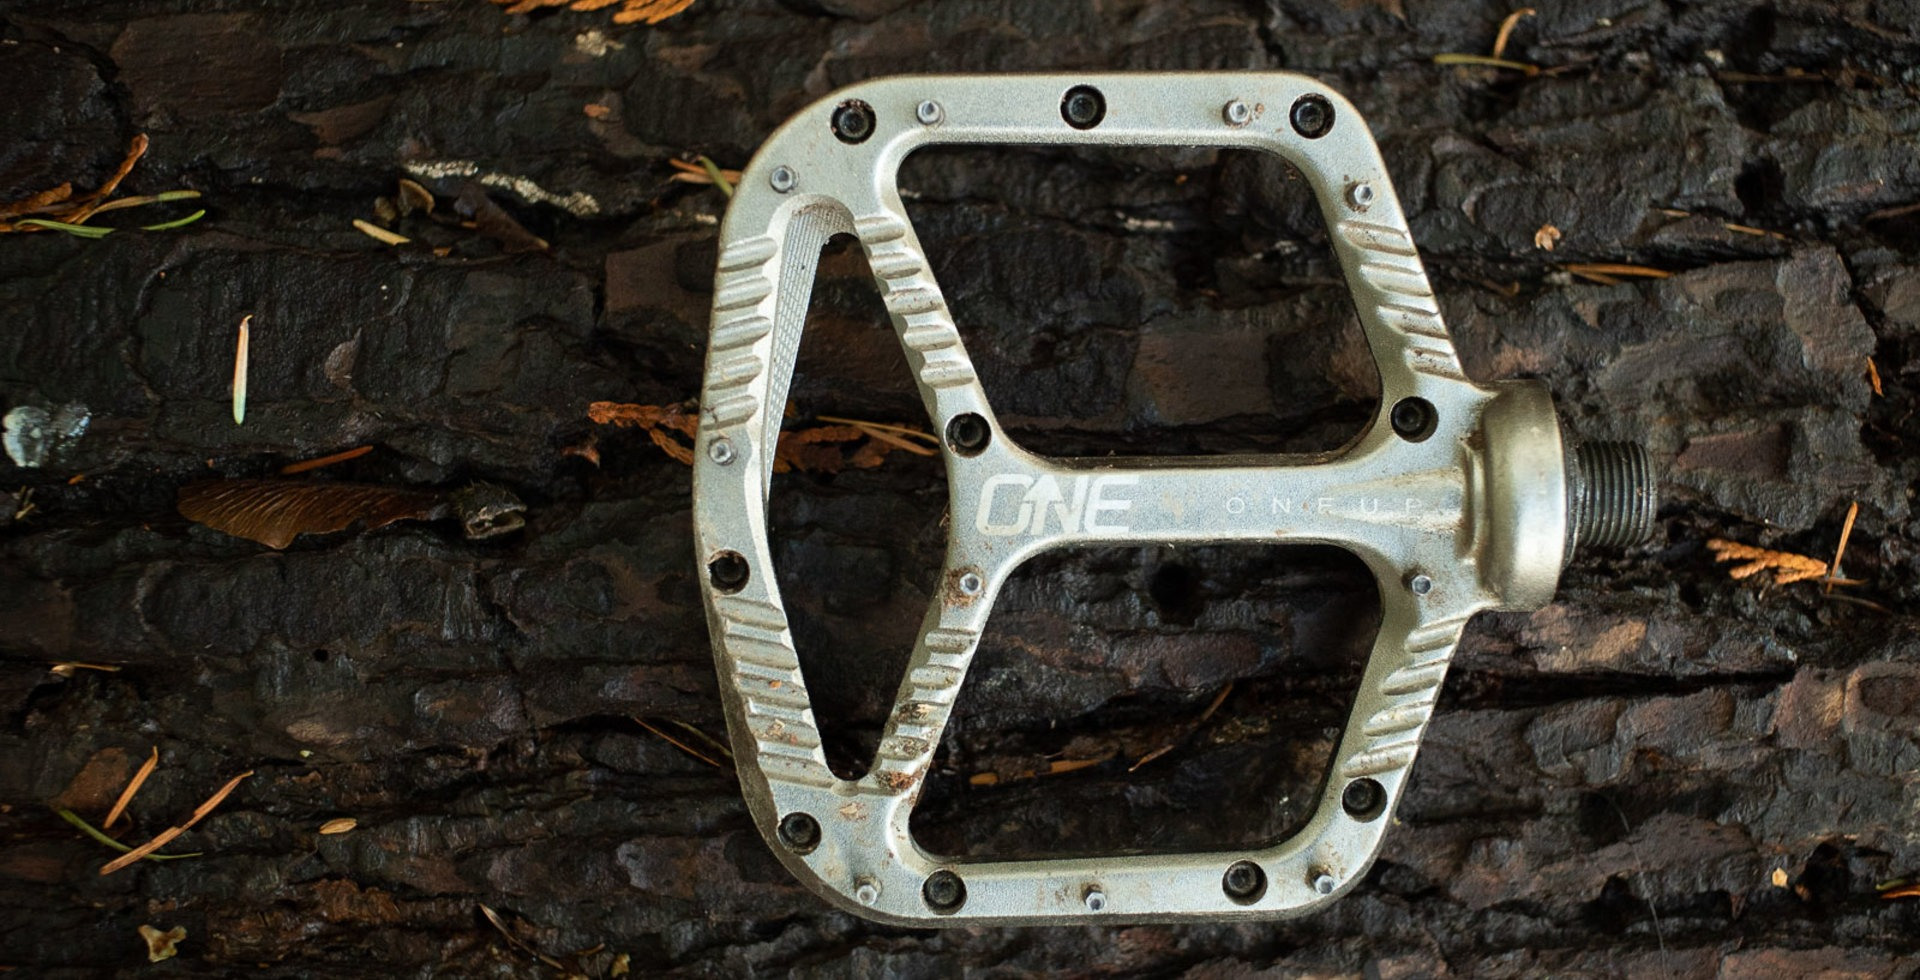 With a large-ish platform, ten pins and a thin profile, OneUp's Aluminum Pedals has a lot of good things going for it.